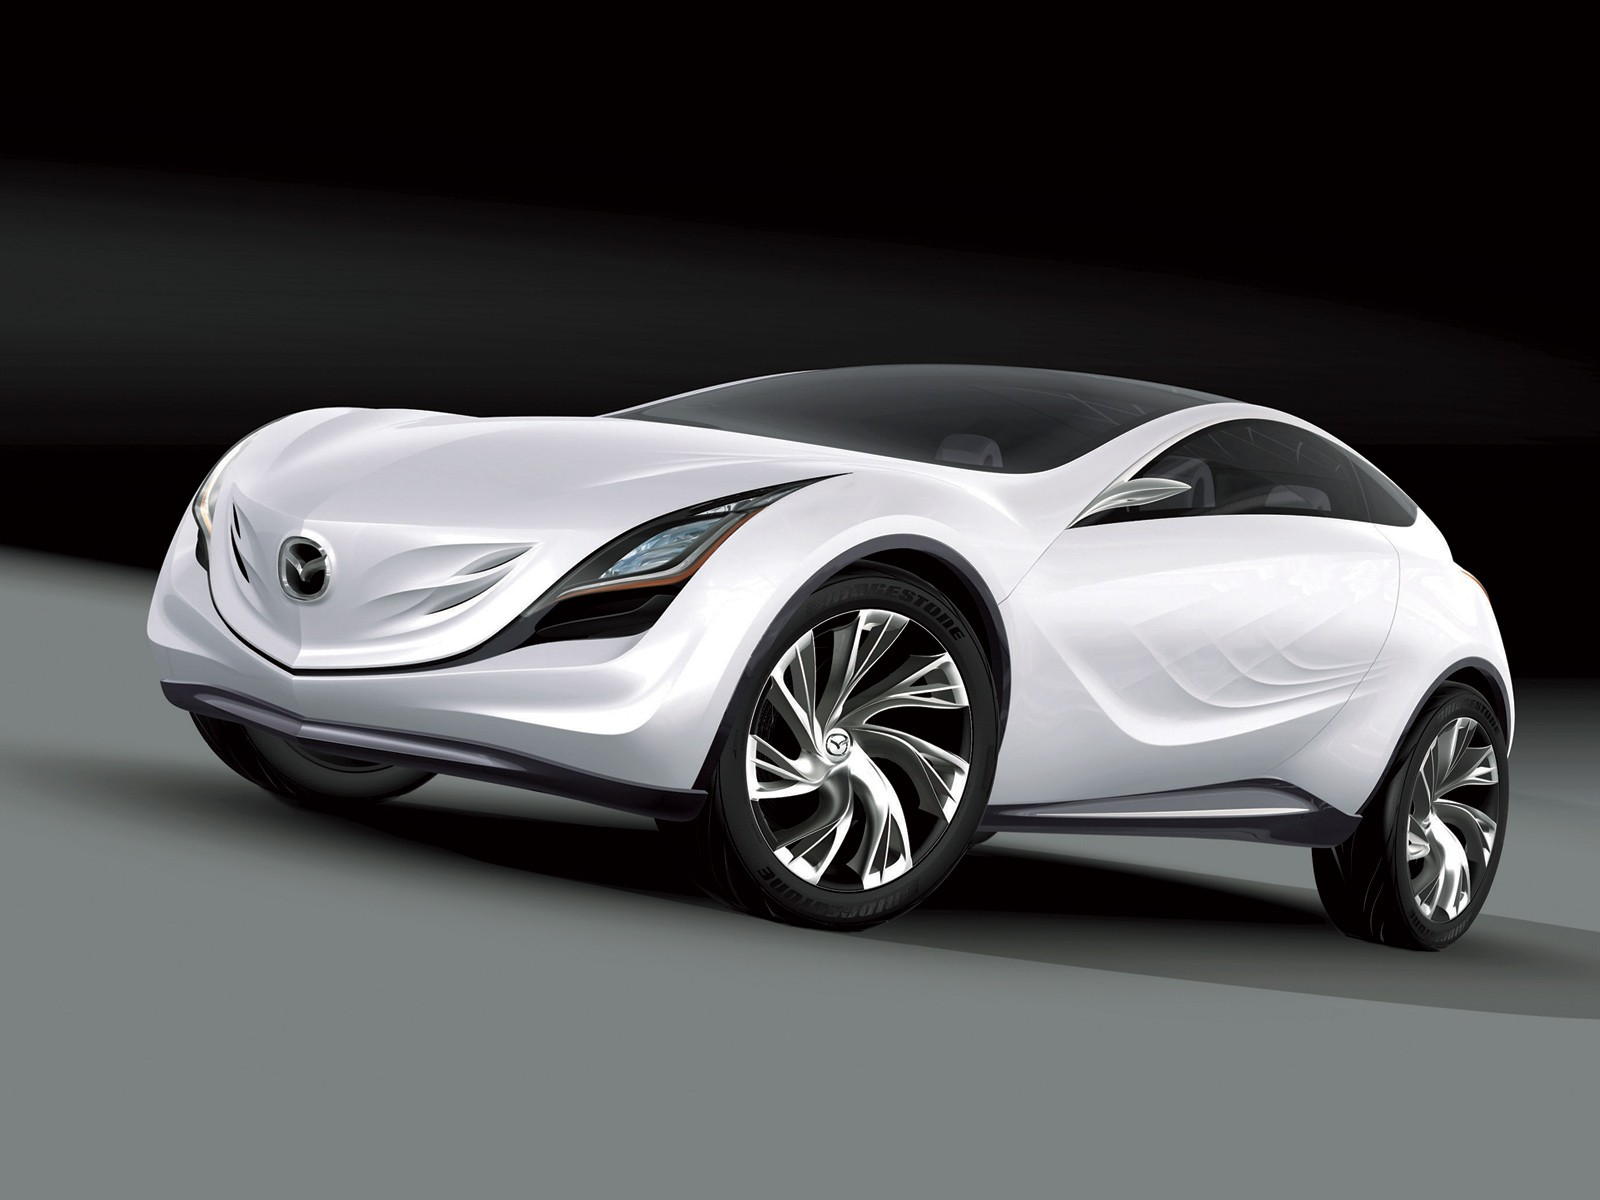 mazda kazamai concept 01 Hd Exotic Car Wallpapers